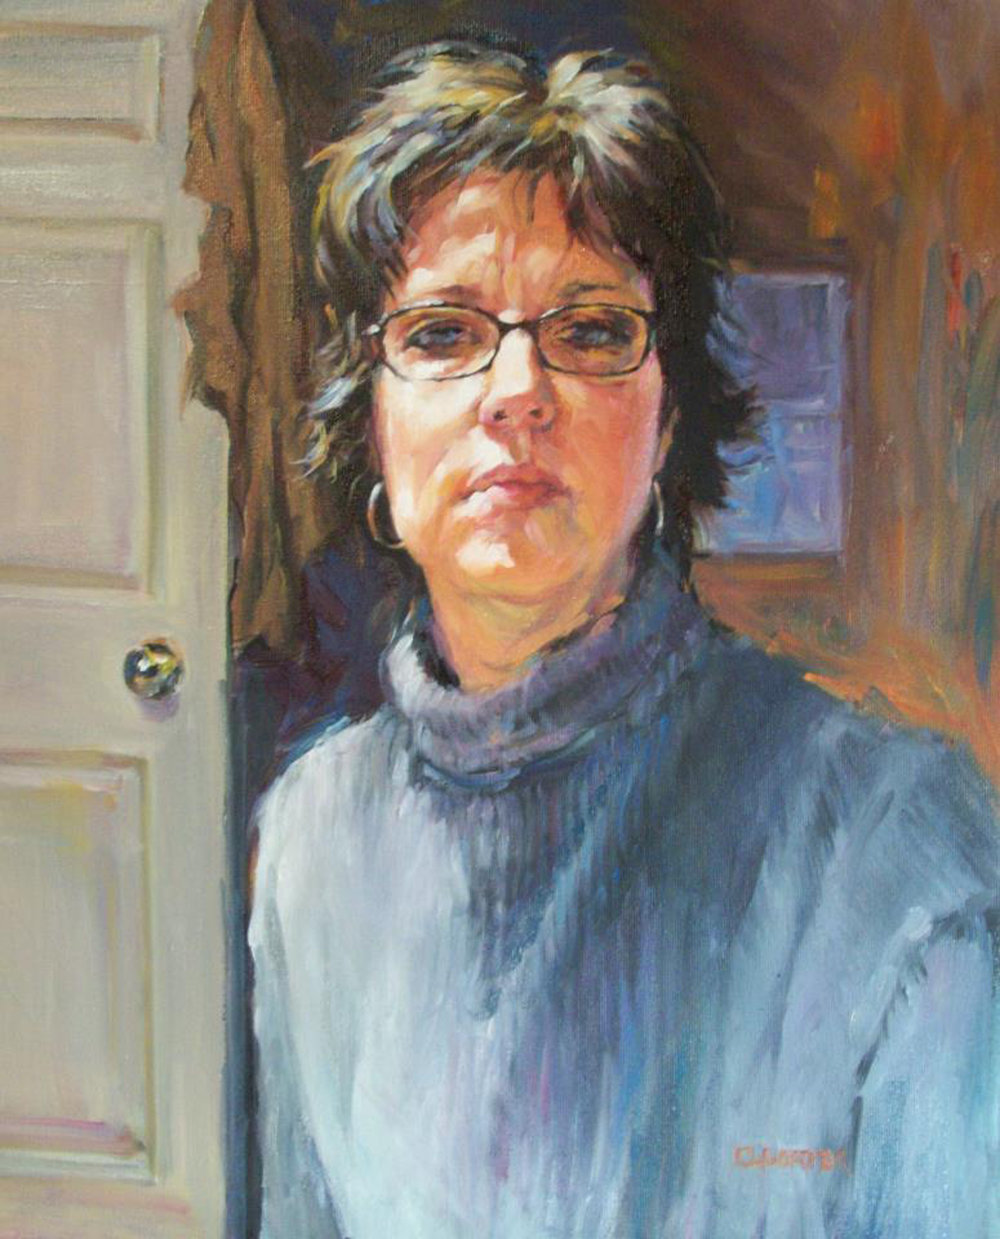 Oil    Oil portraits can be formal or casual as in this example. Colors are rich and there is a elegant texture as part of the style.